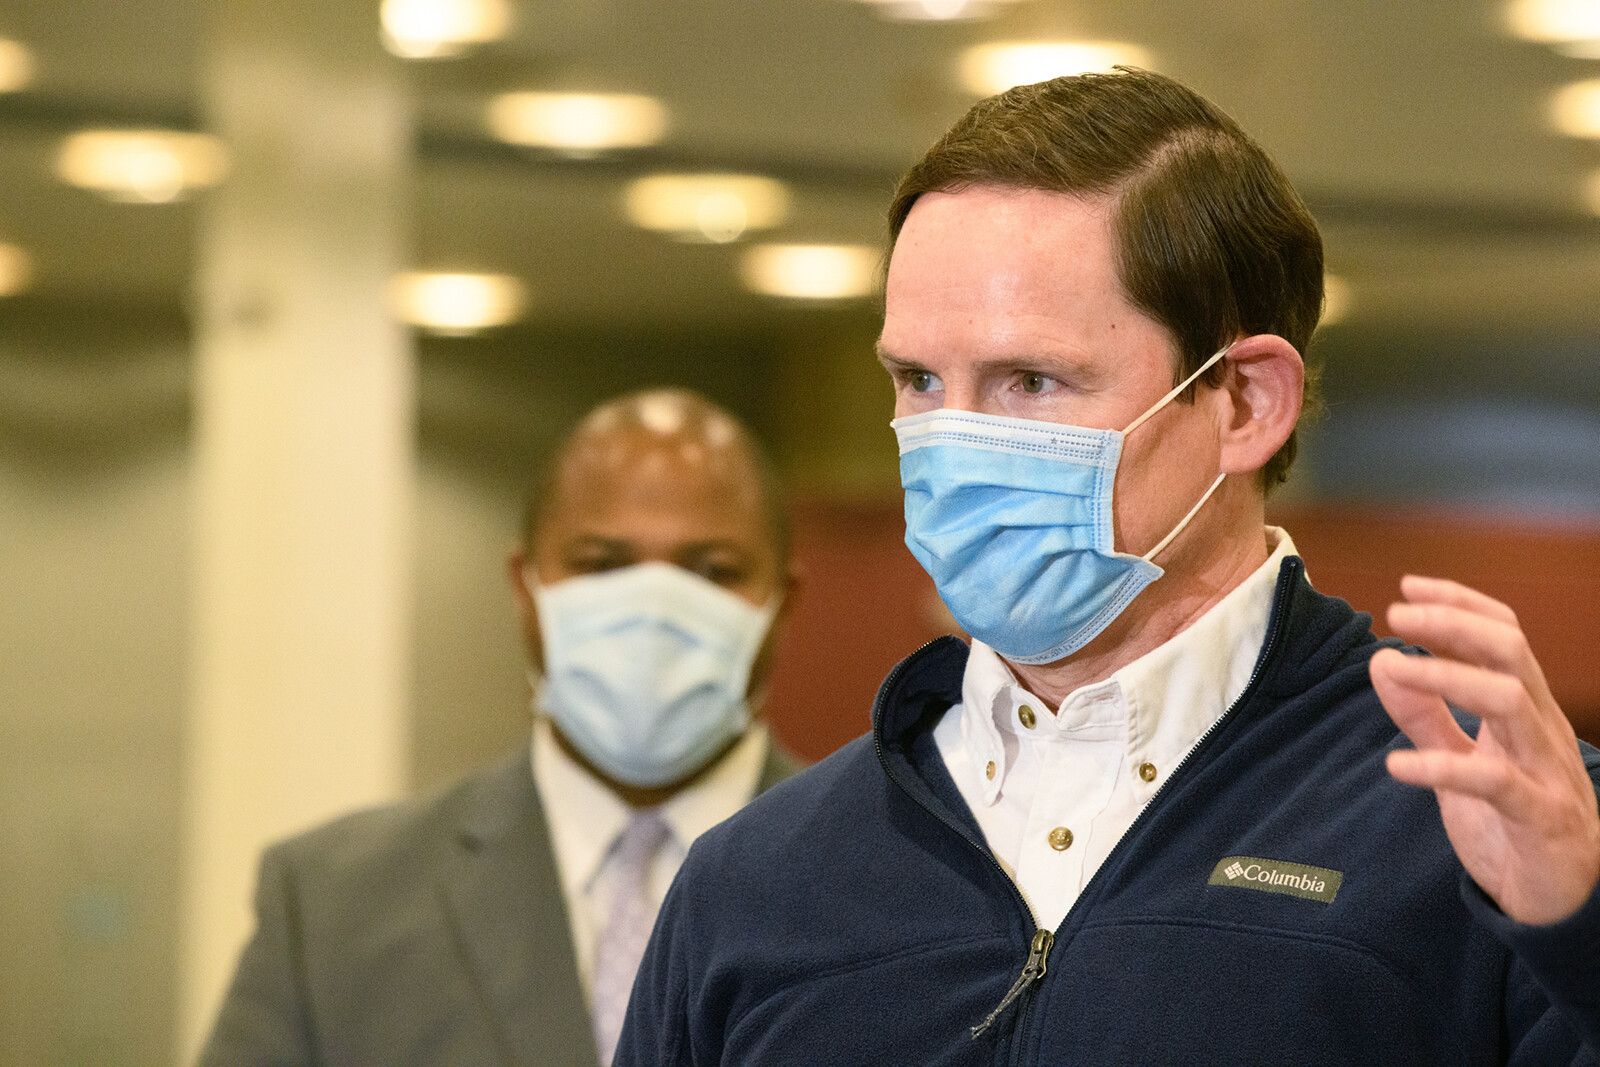 Dallas County judge asks for temporary restraining order against governor's mask mandate ban